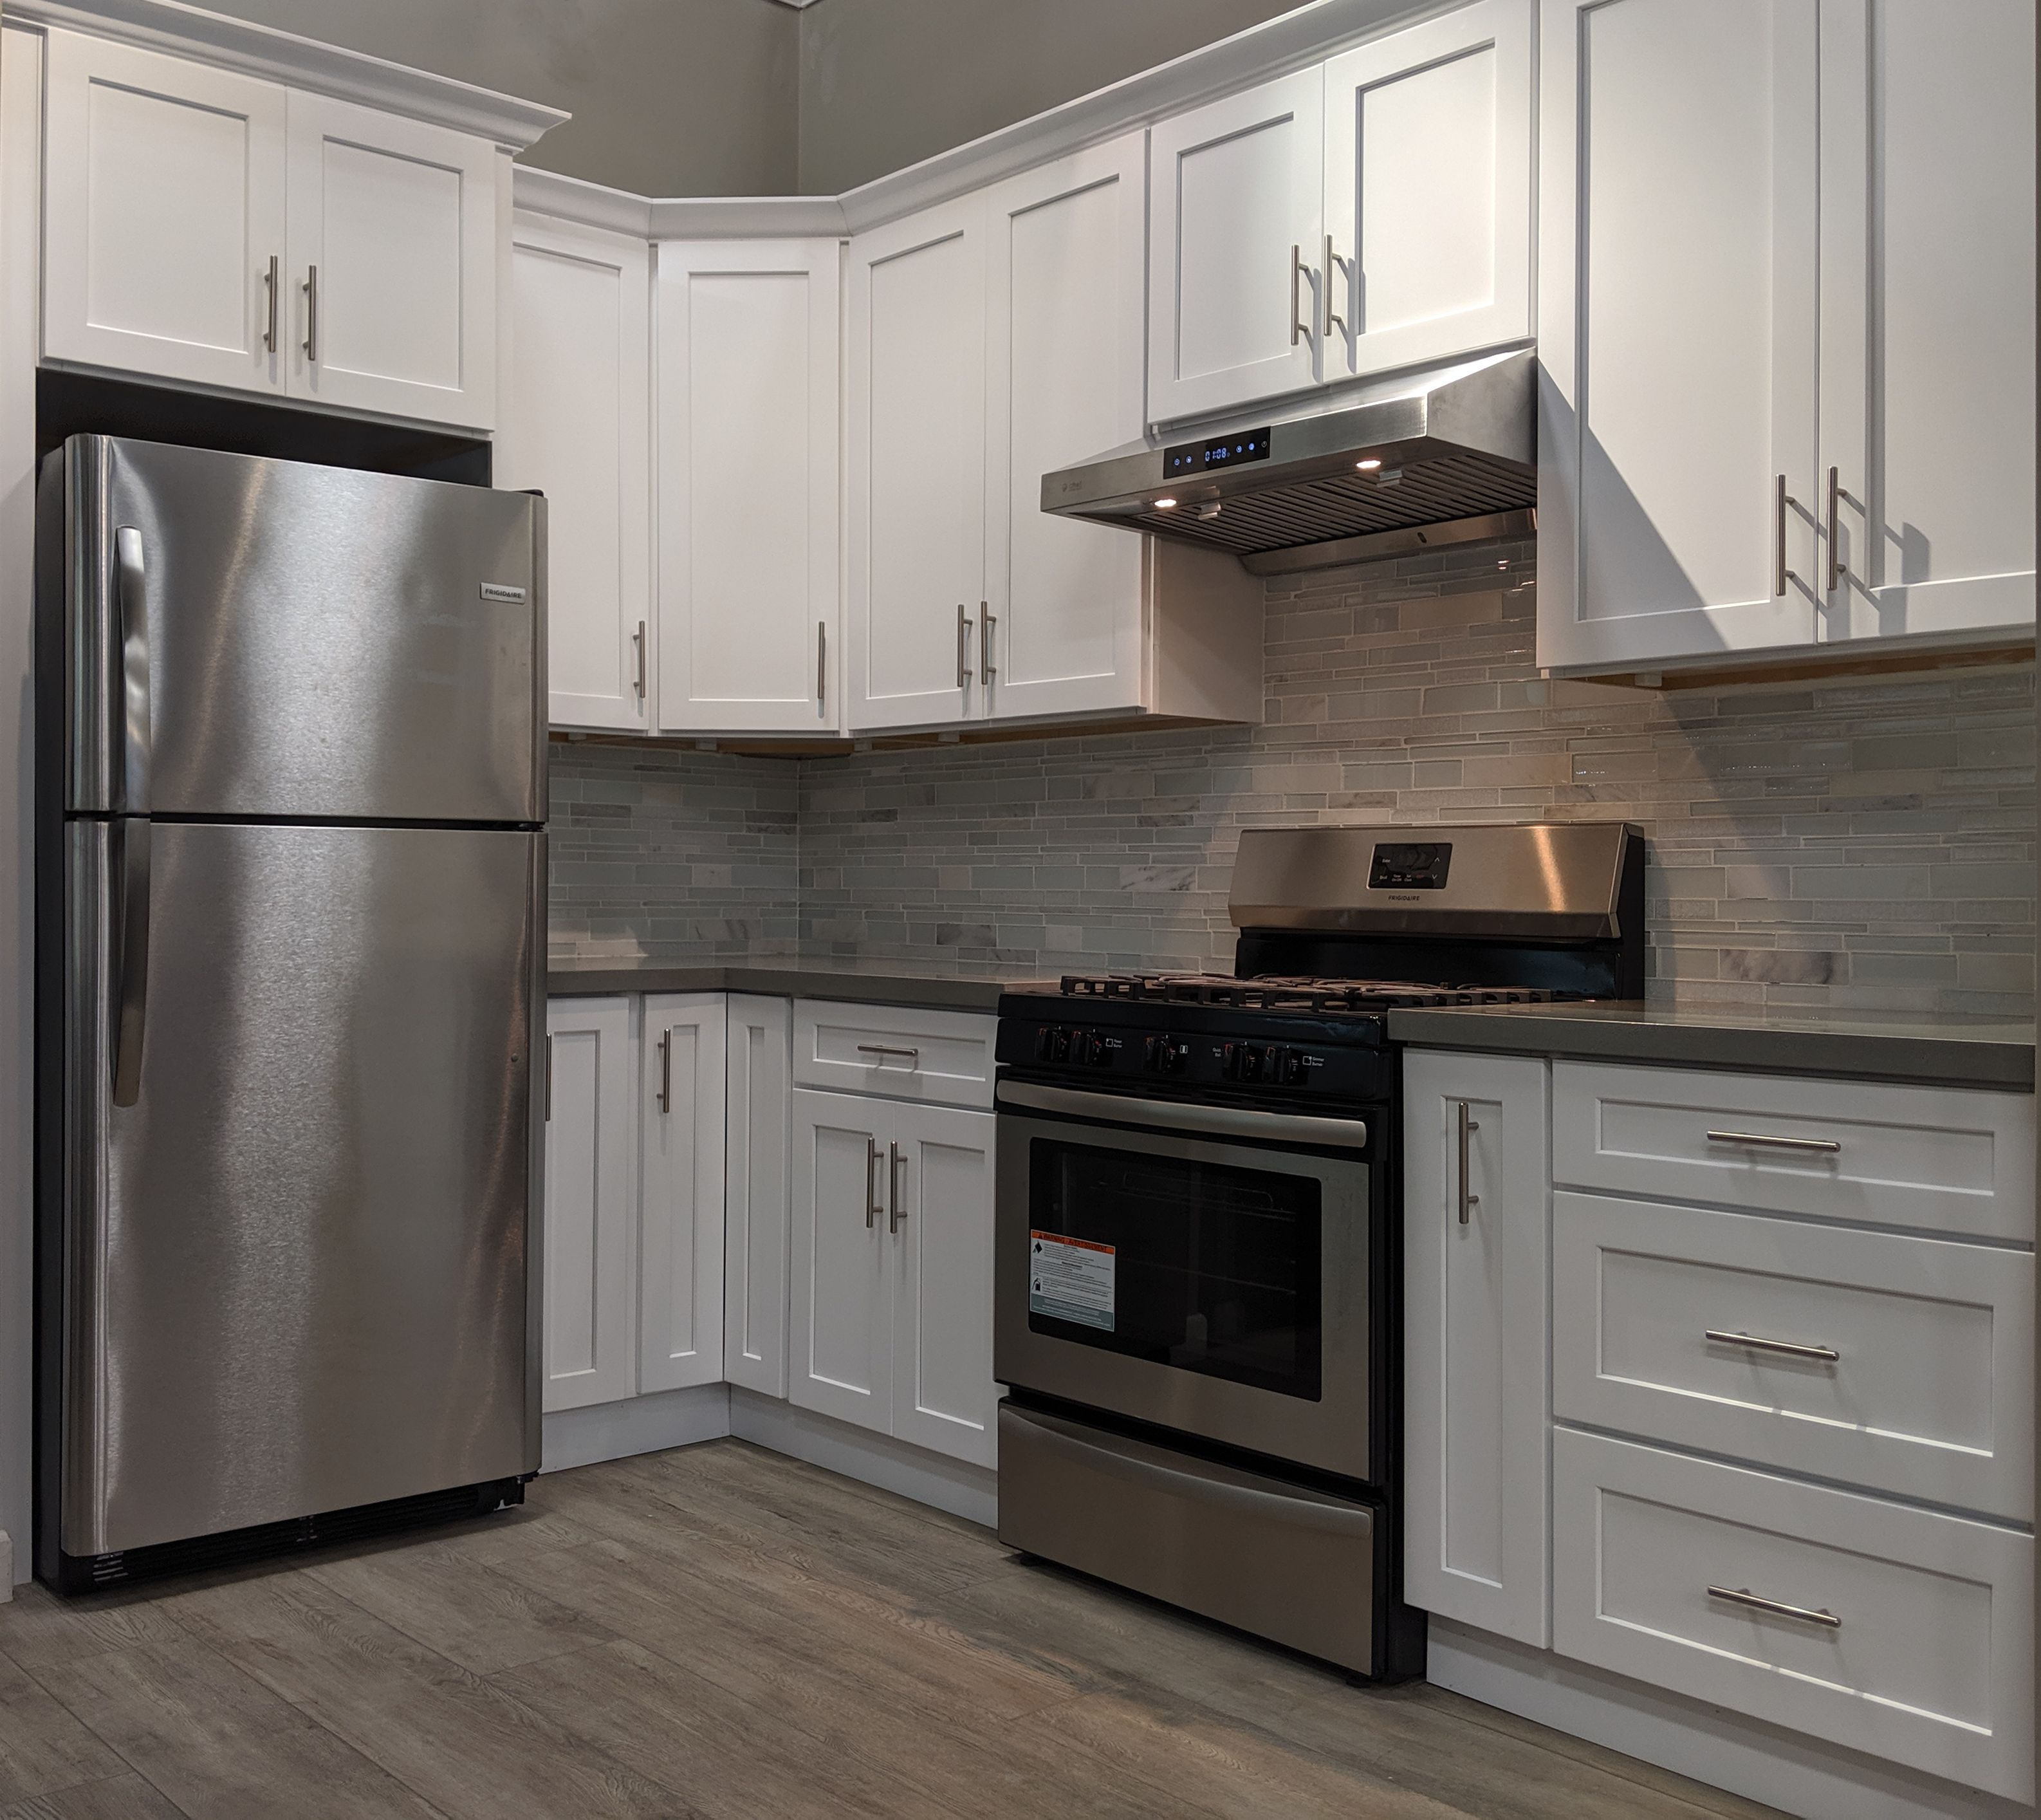 Discount Kitchen Cabinets   In Stock Cabinets   San Francisco Bay ...